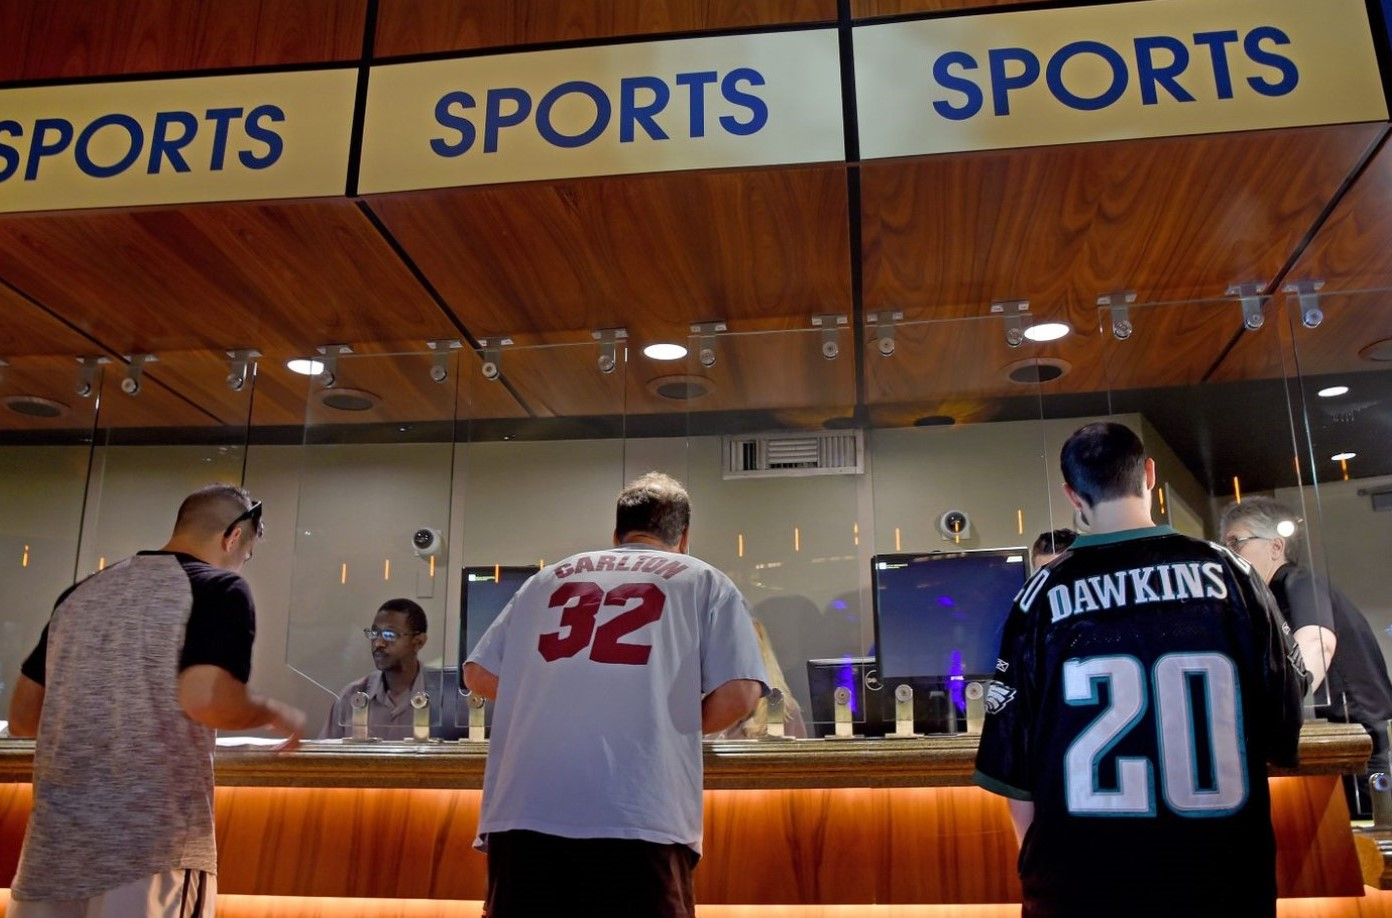 Harrah's Pays State's Hefty Application Fee to Bring Sports Wagering to Chester